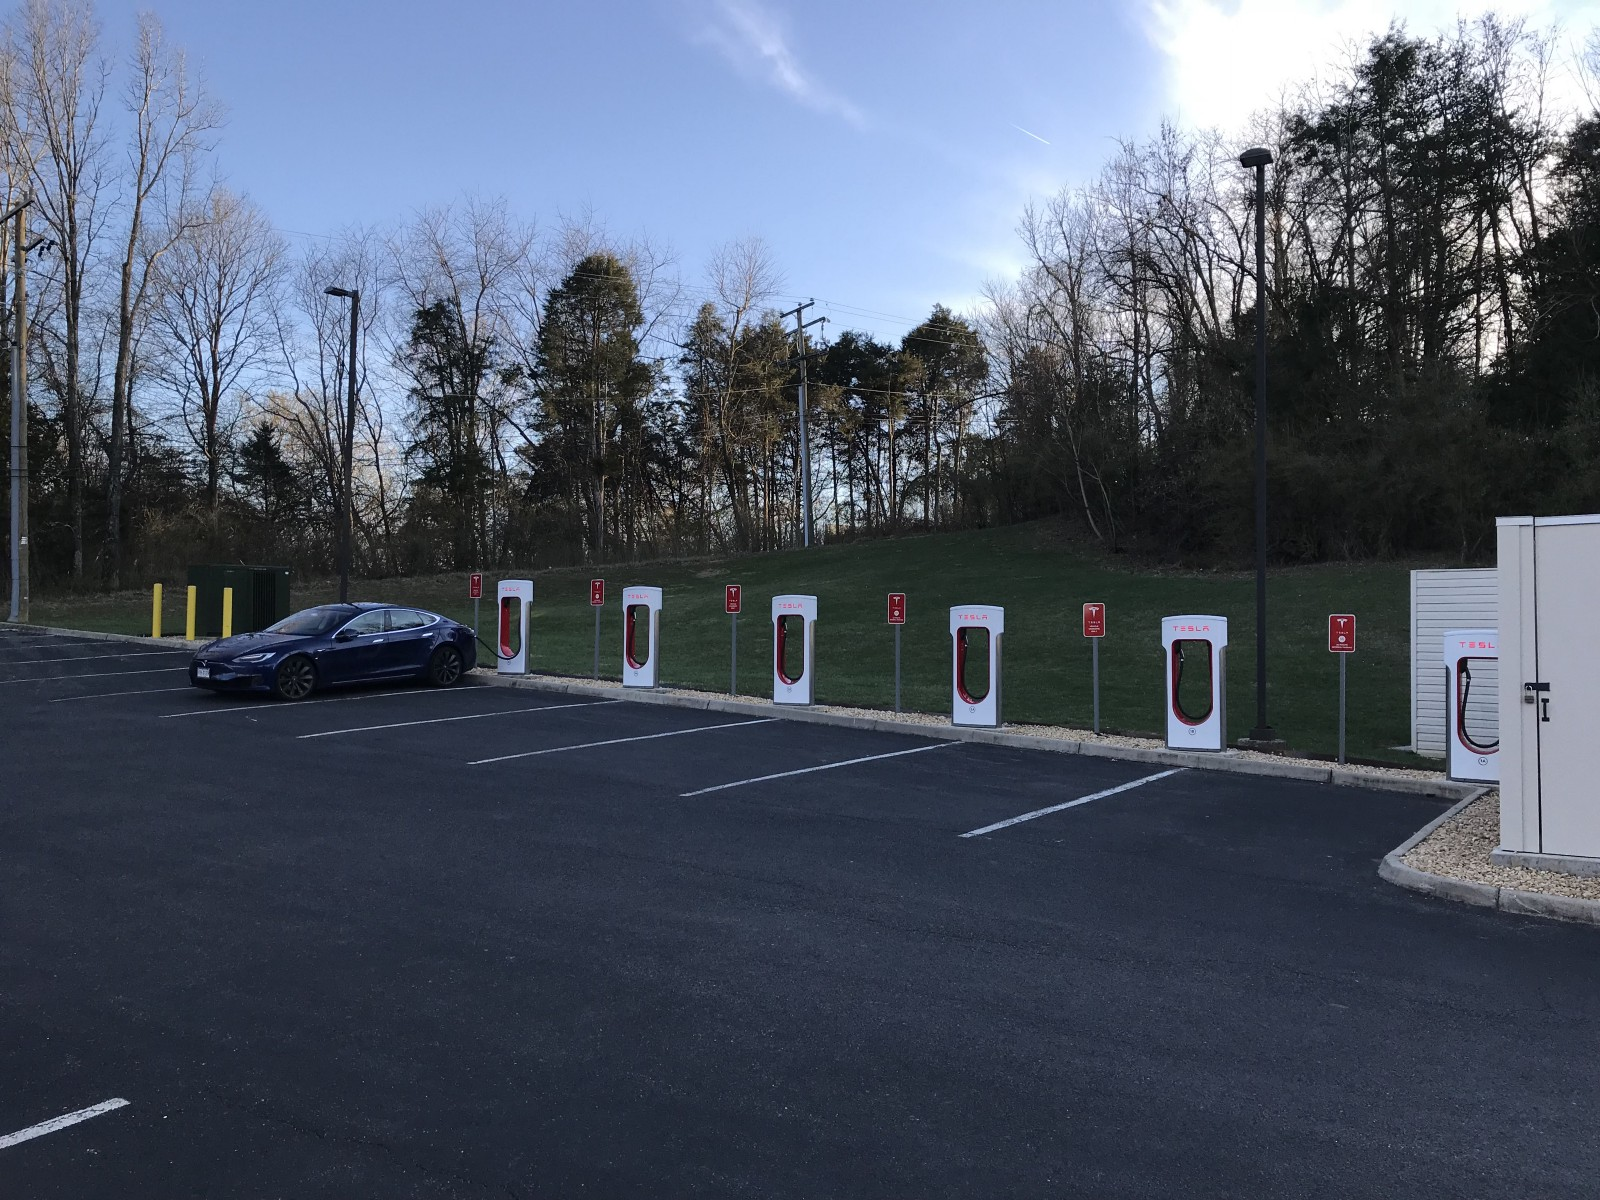 Supercharger Station Hopping Across Virginia in My Tesla - By